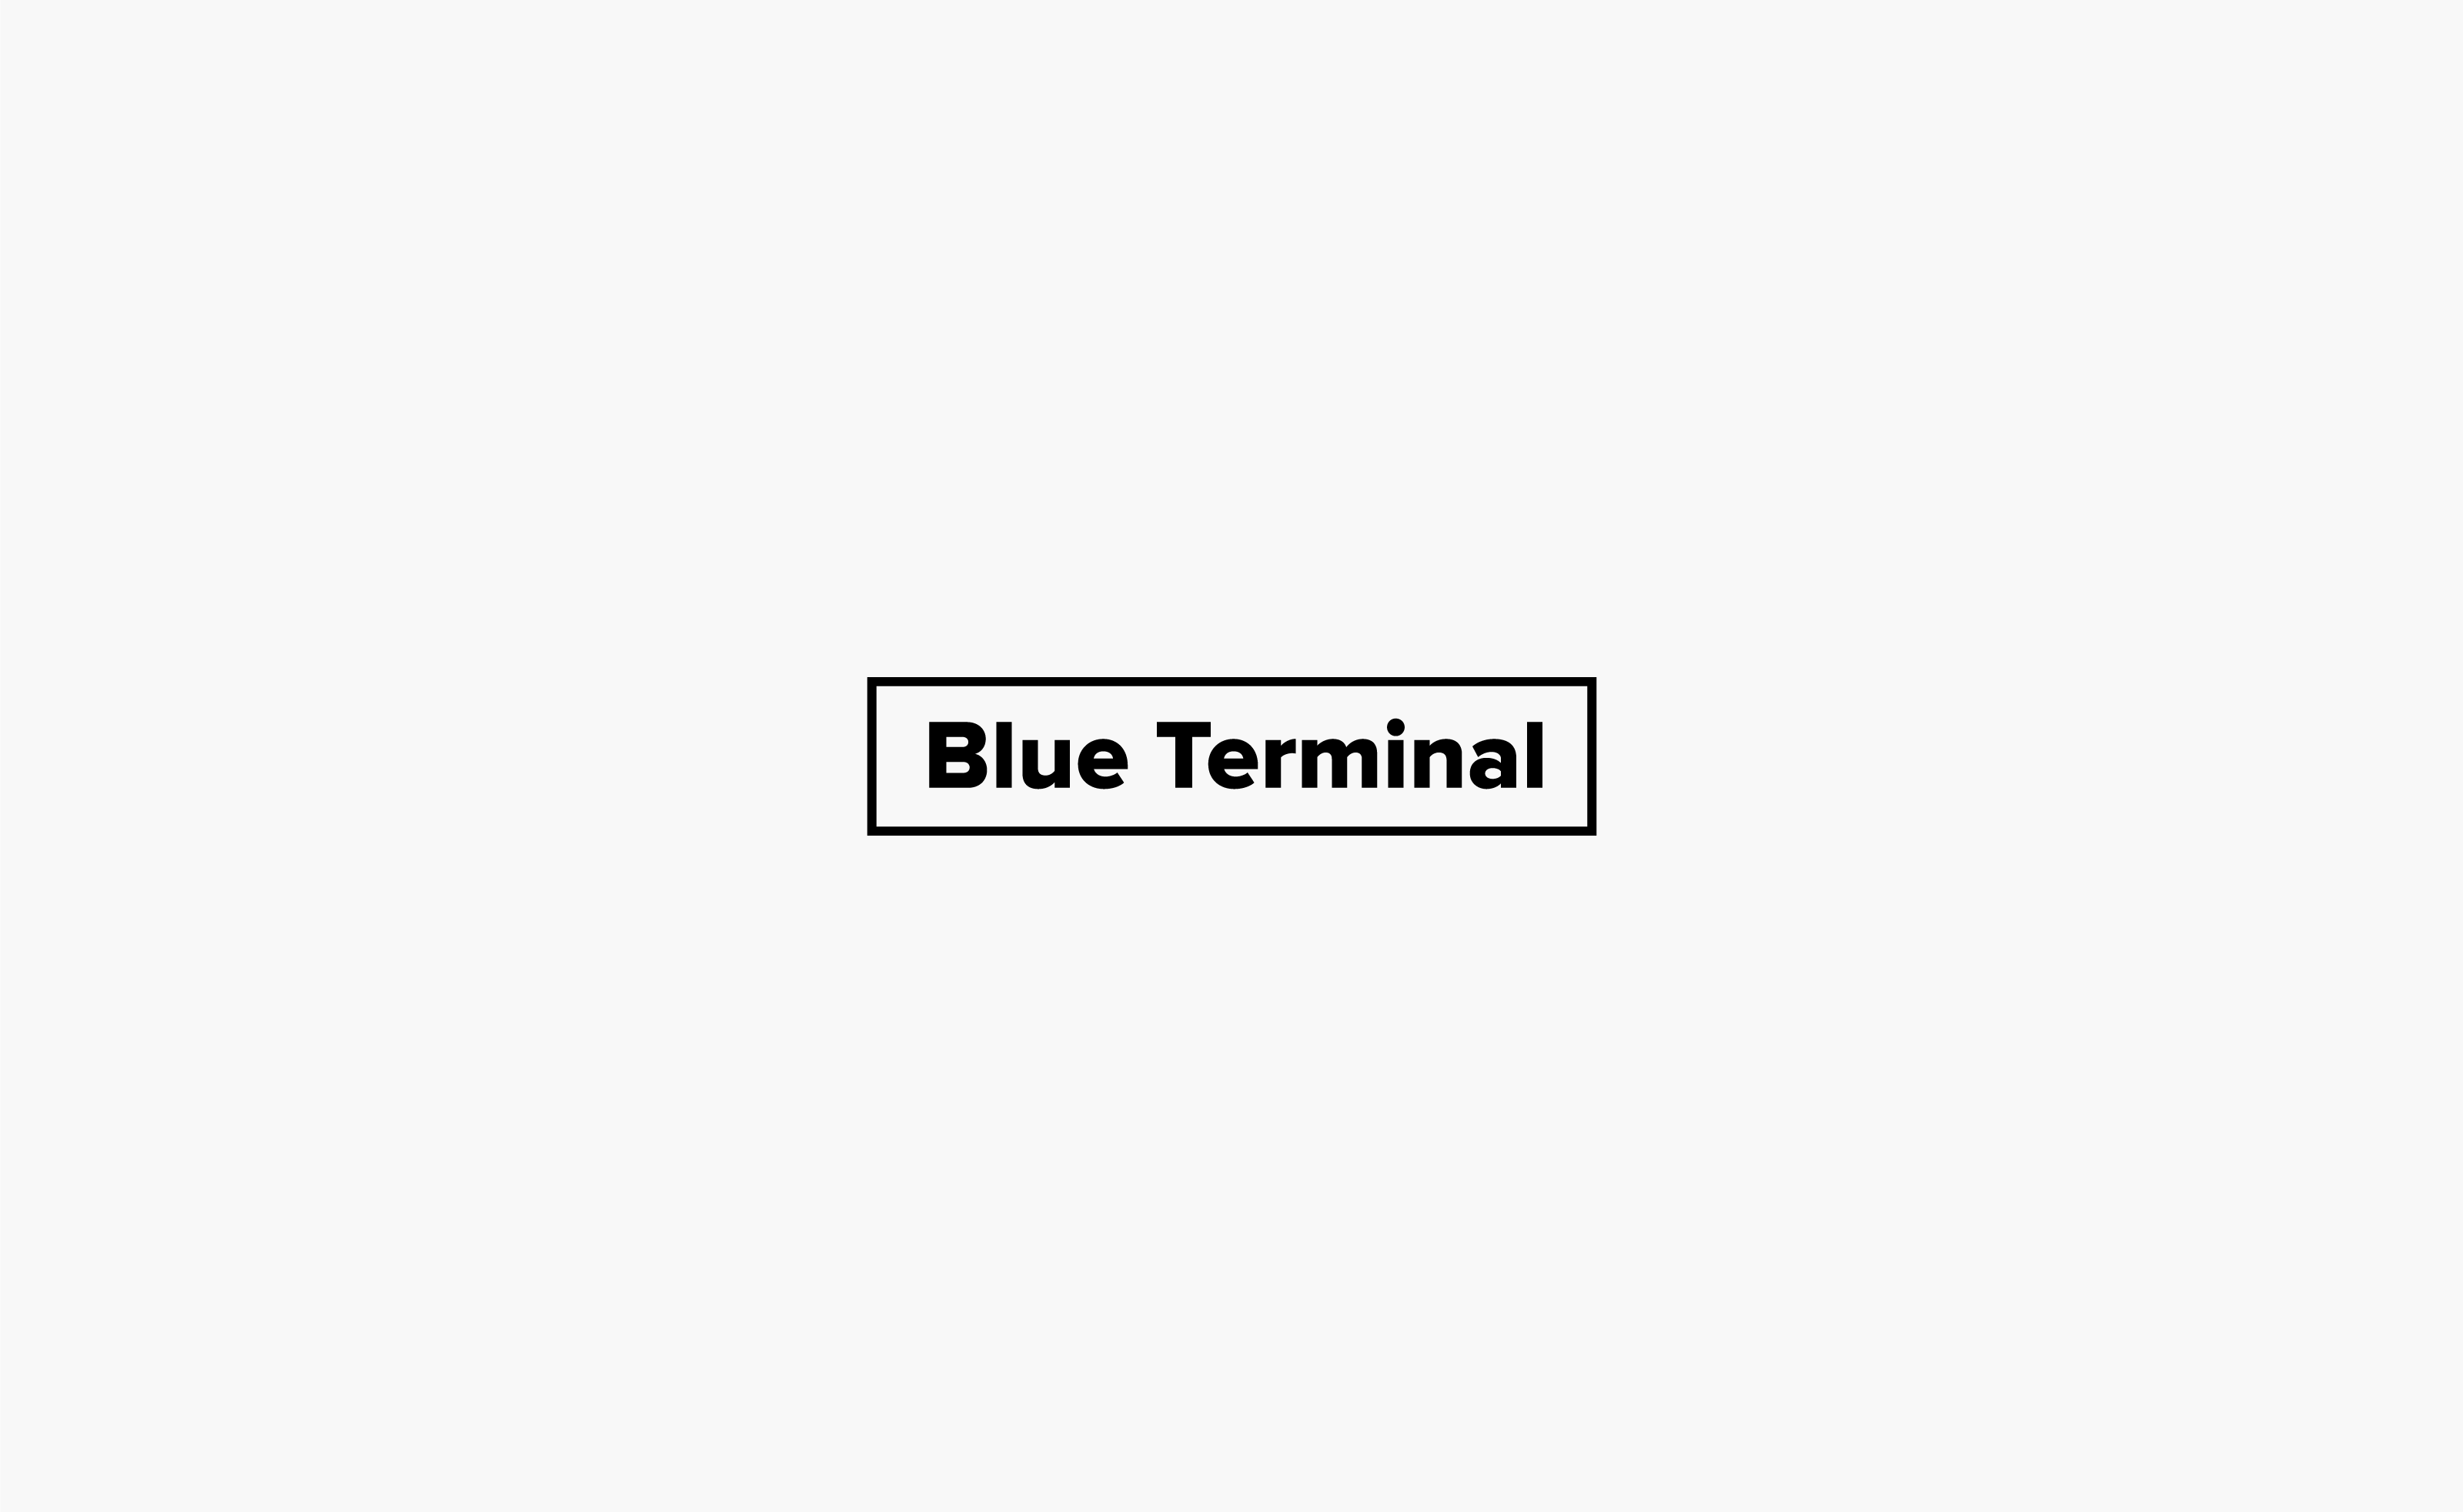 Blue Terminal logo centred on a light grey background — by Yagnyuk.